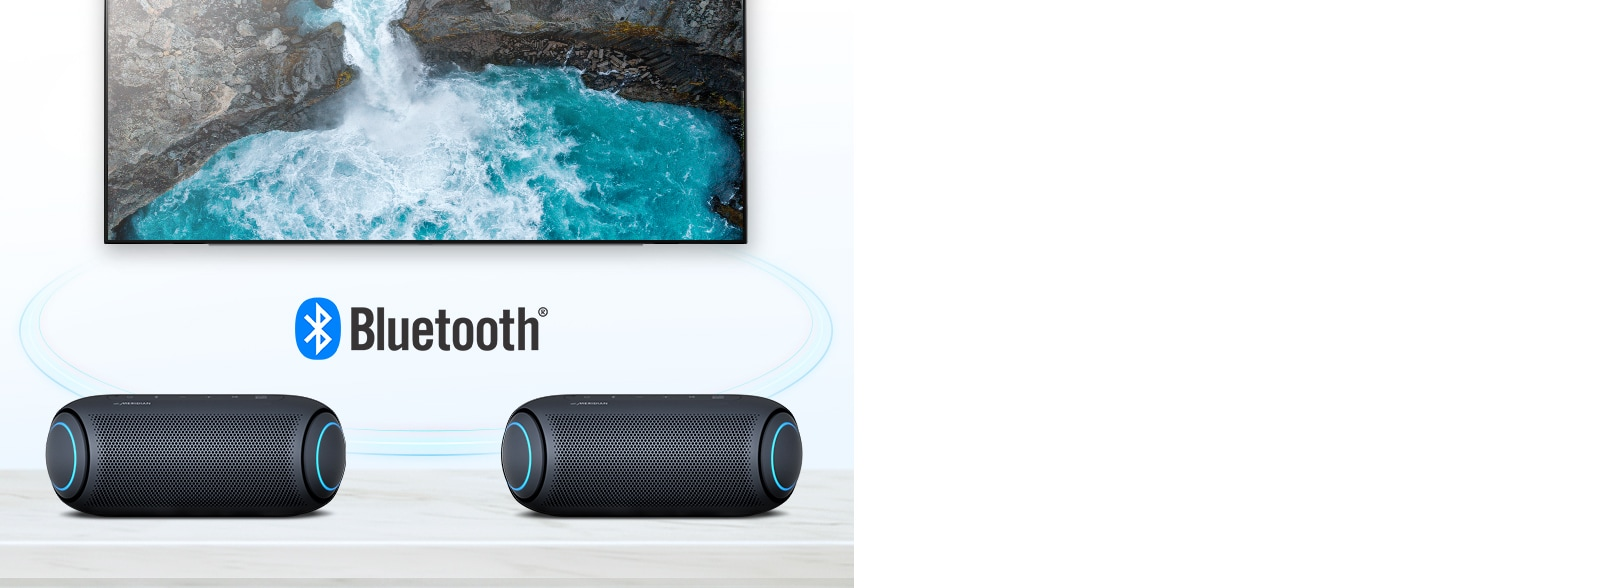 On a table, two LG XBOOM Go with sky blue lighting are in front of a TV showing a waterfall.